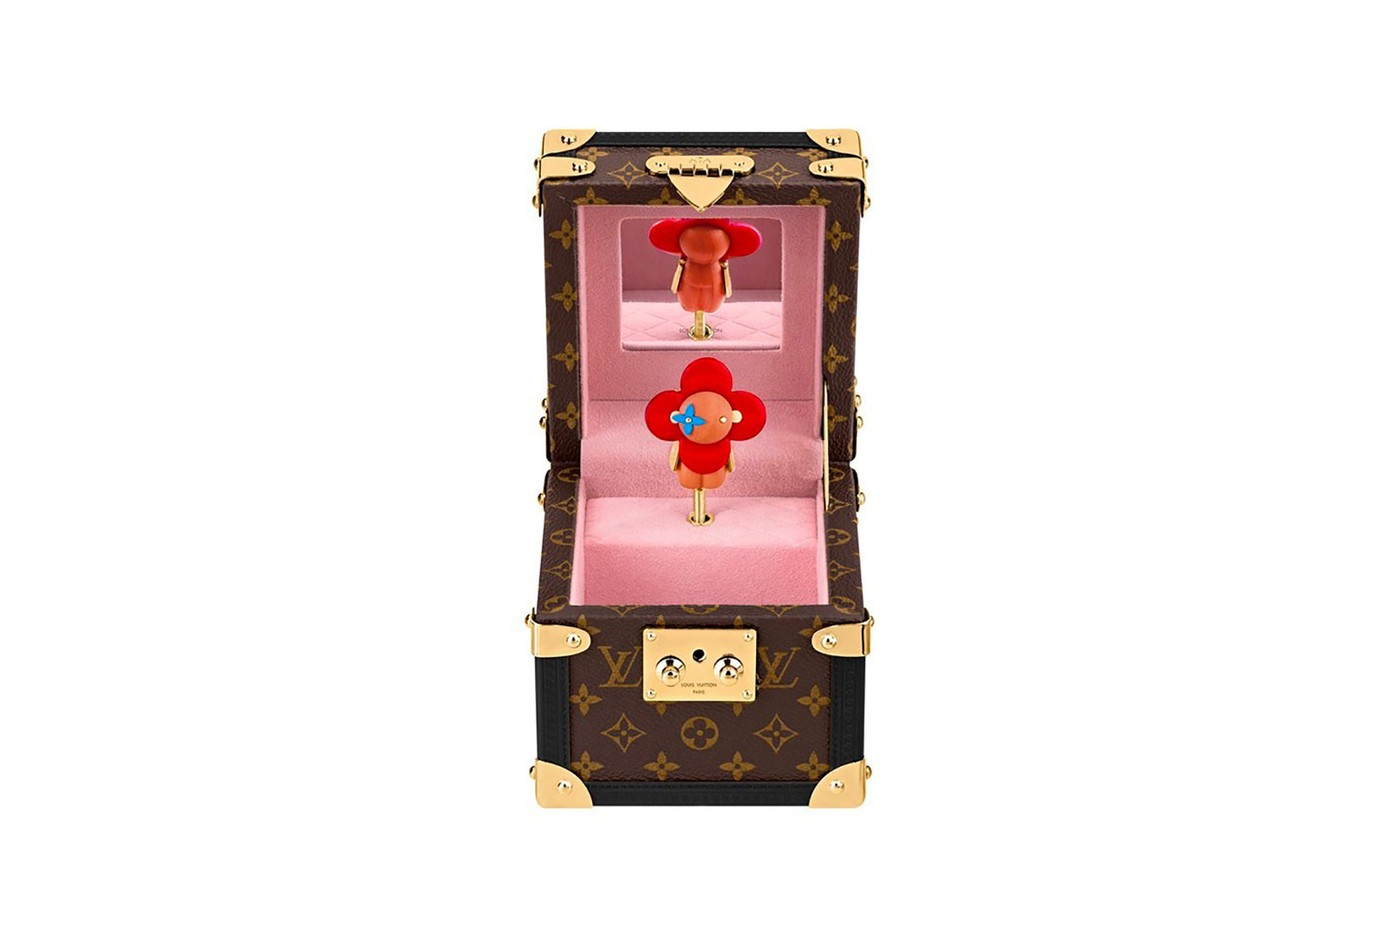 Louis vuitton home goods collection games toys jenga accessories homeware release